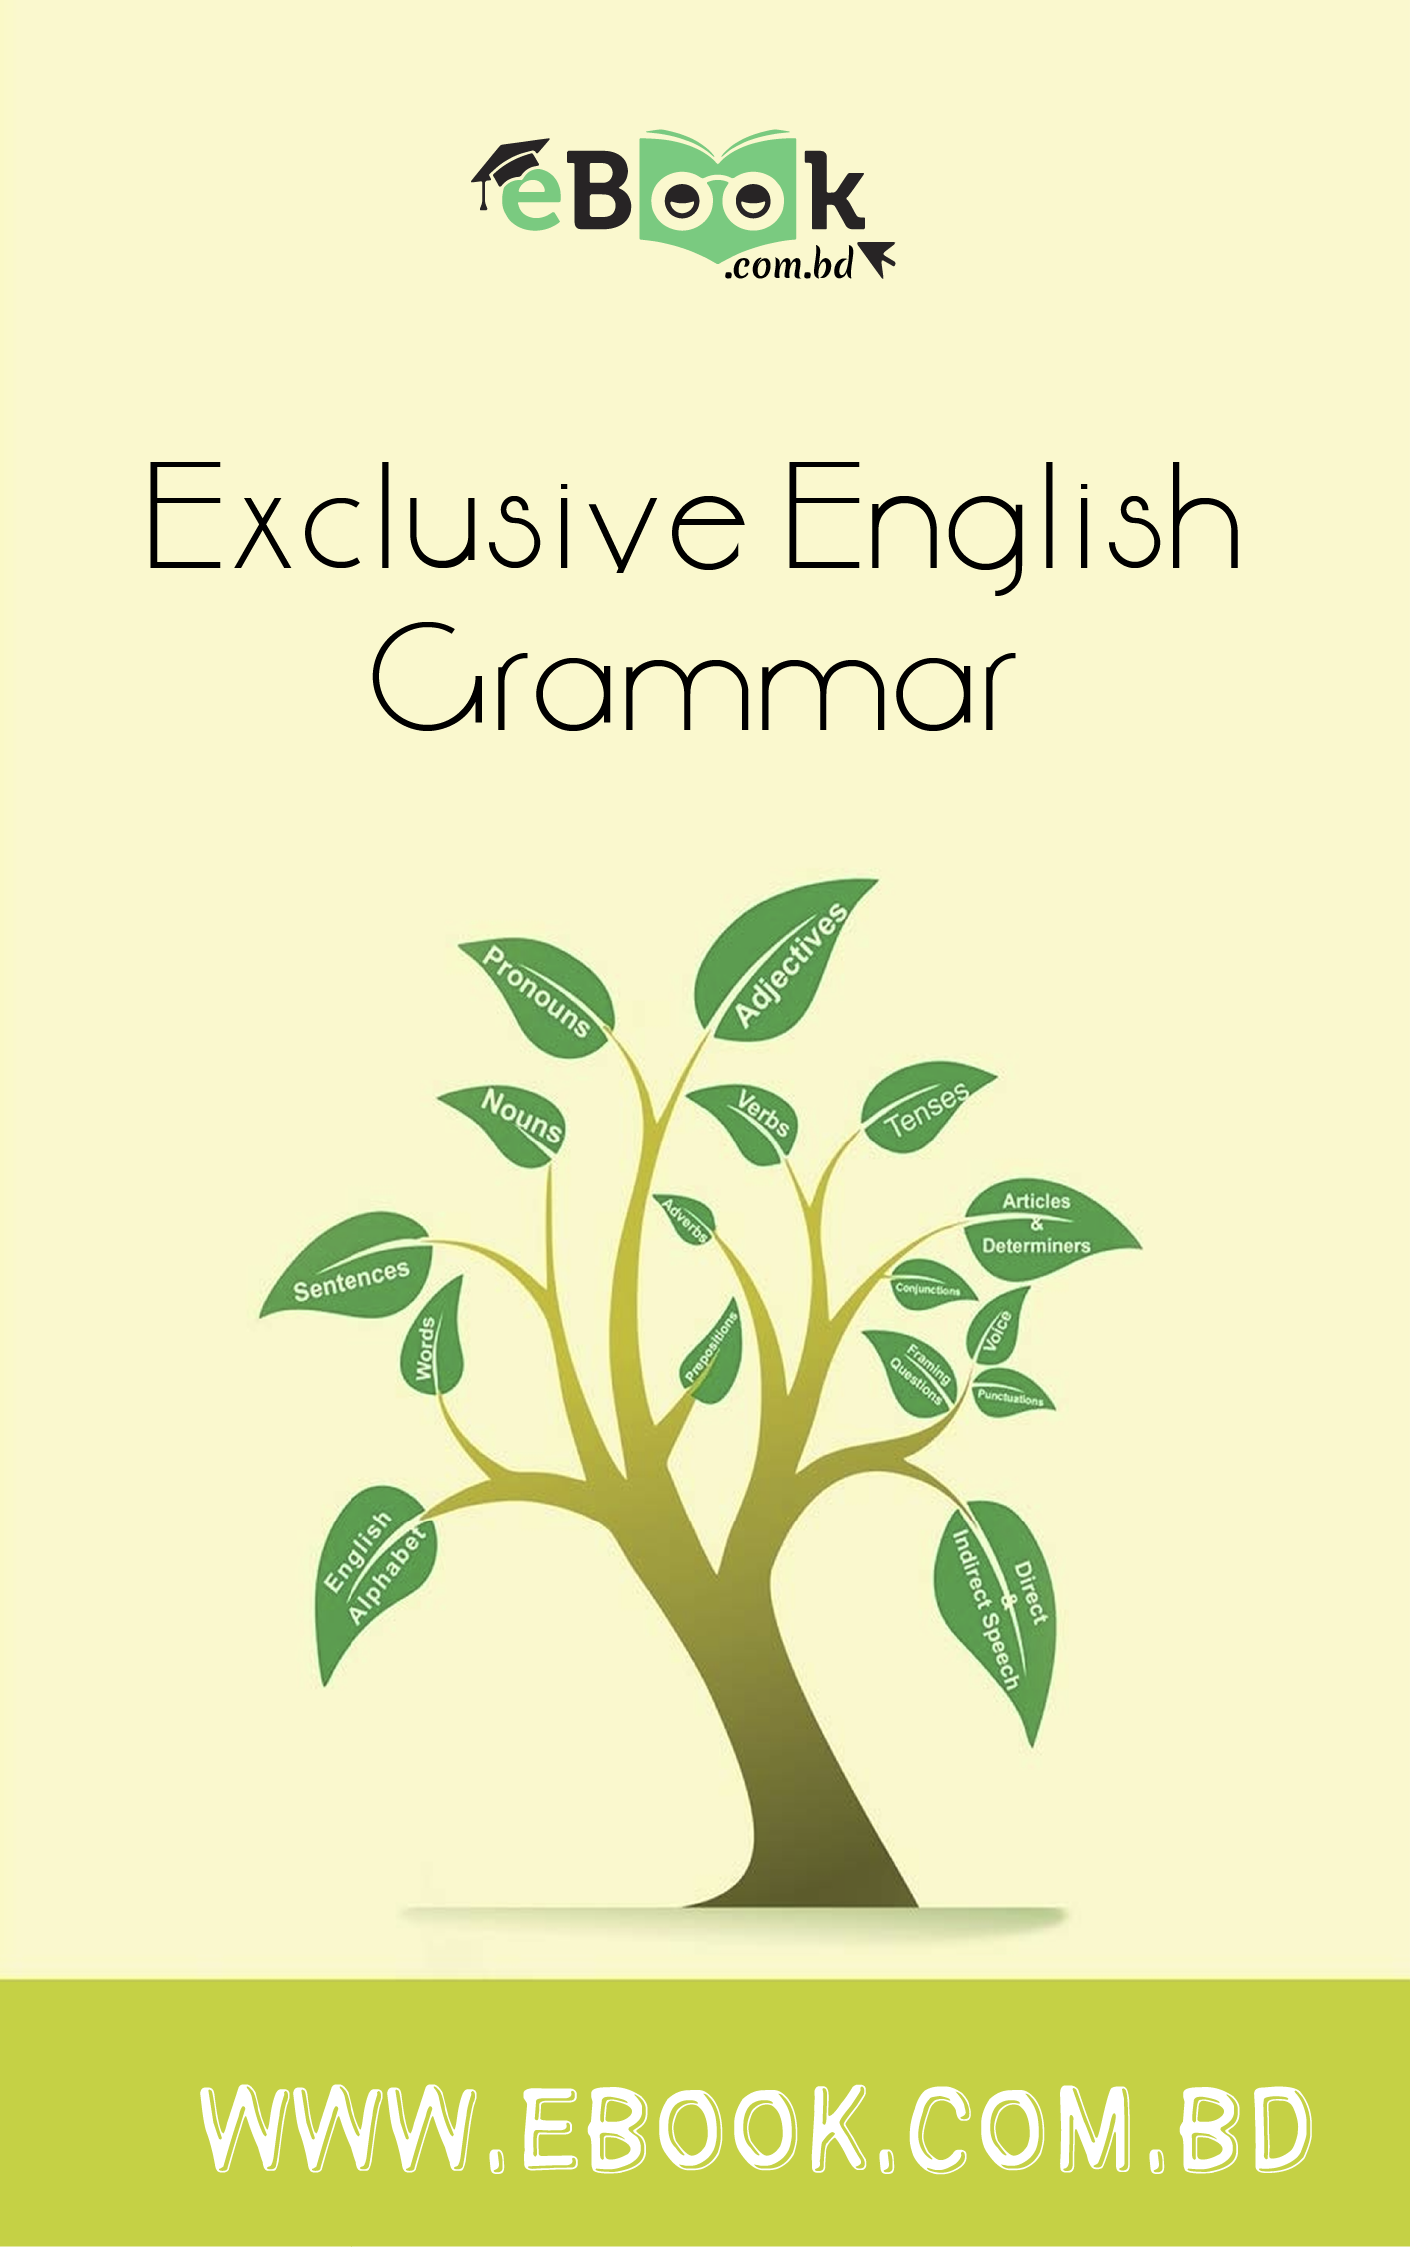 Thumbnail of Exclusive English Grammar